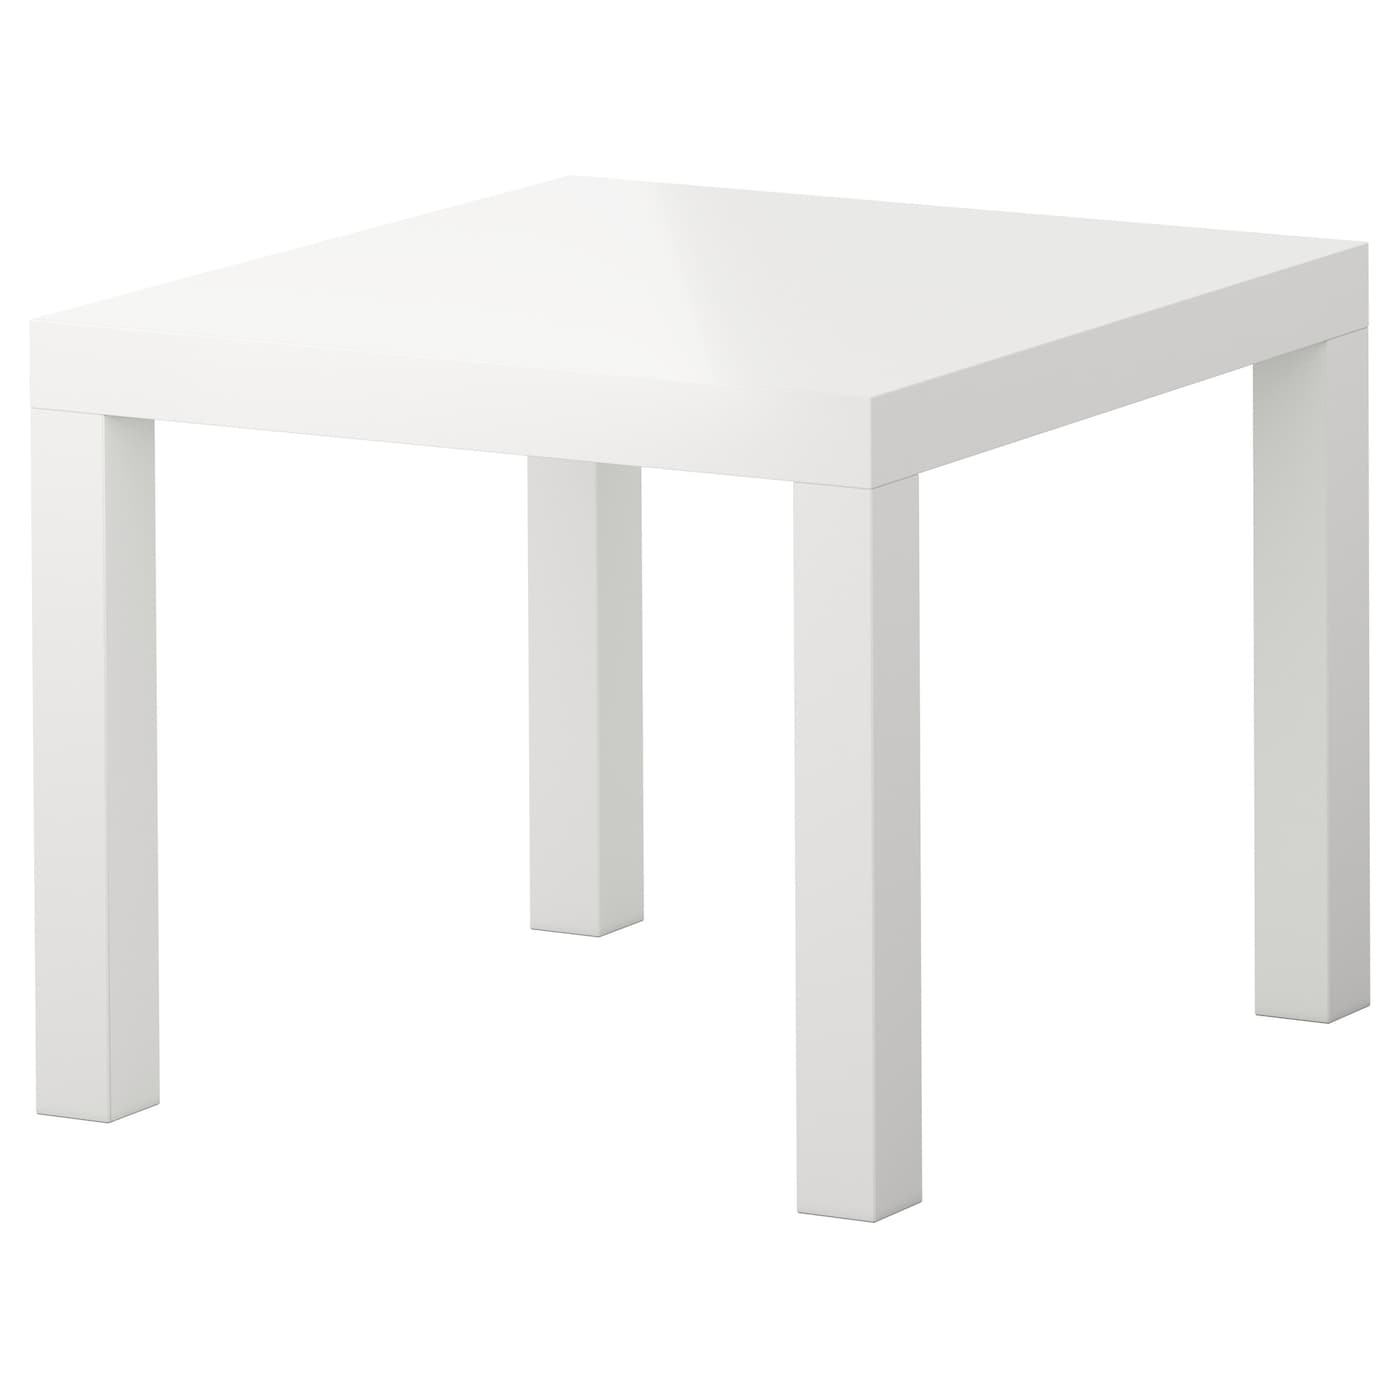 Lack side table high gloss white 55x55 cm ikea for Base de table ikea